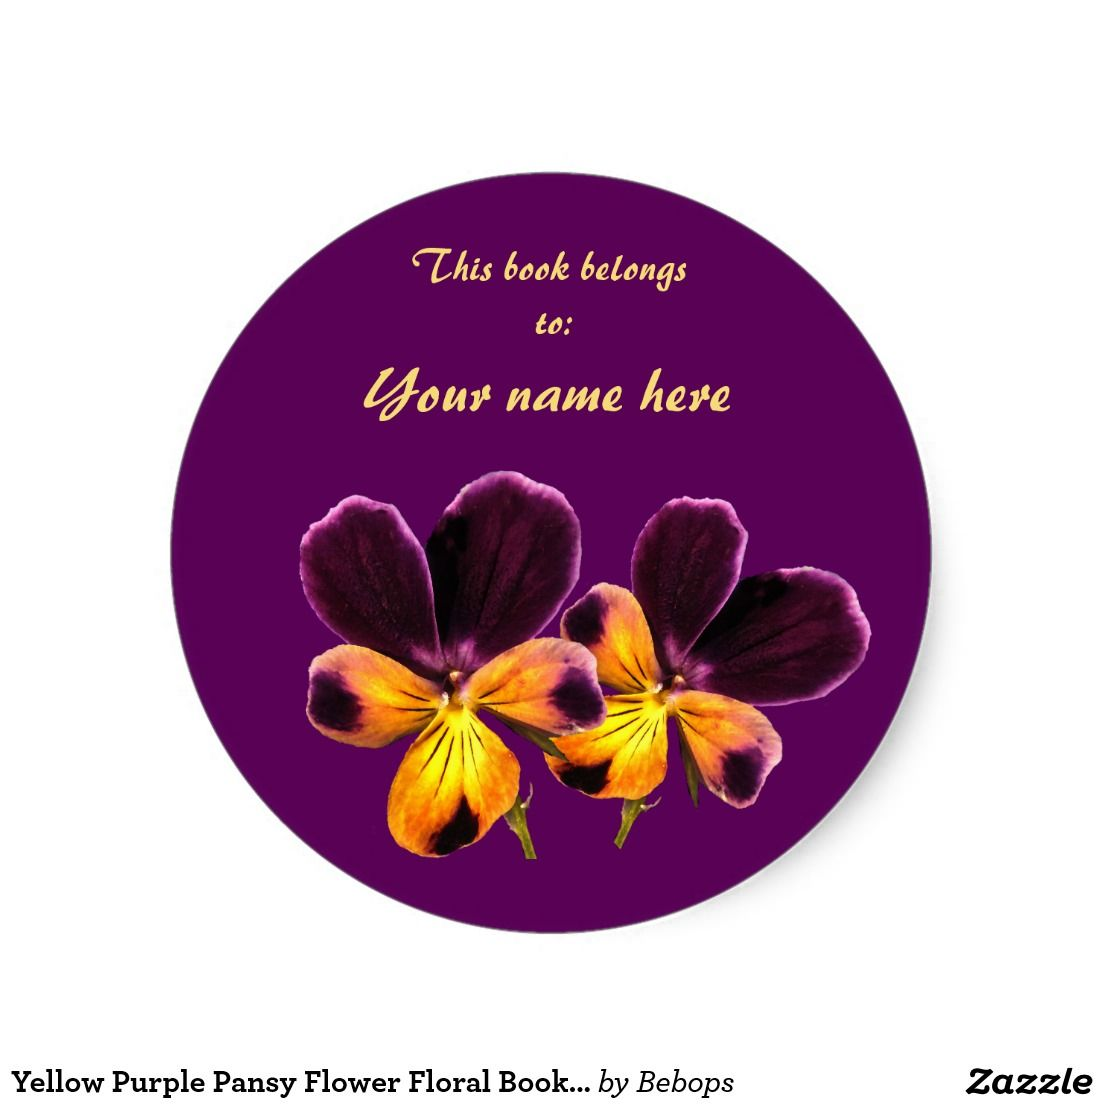 Yellow Purple Pansy Flower Floral Bookplate Zazzle Com With Images Pansies Flowers Purple Pansy Pansies